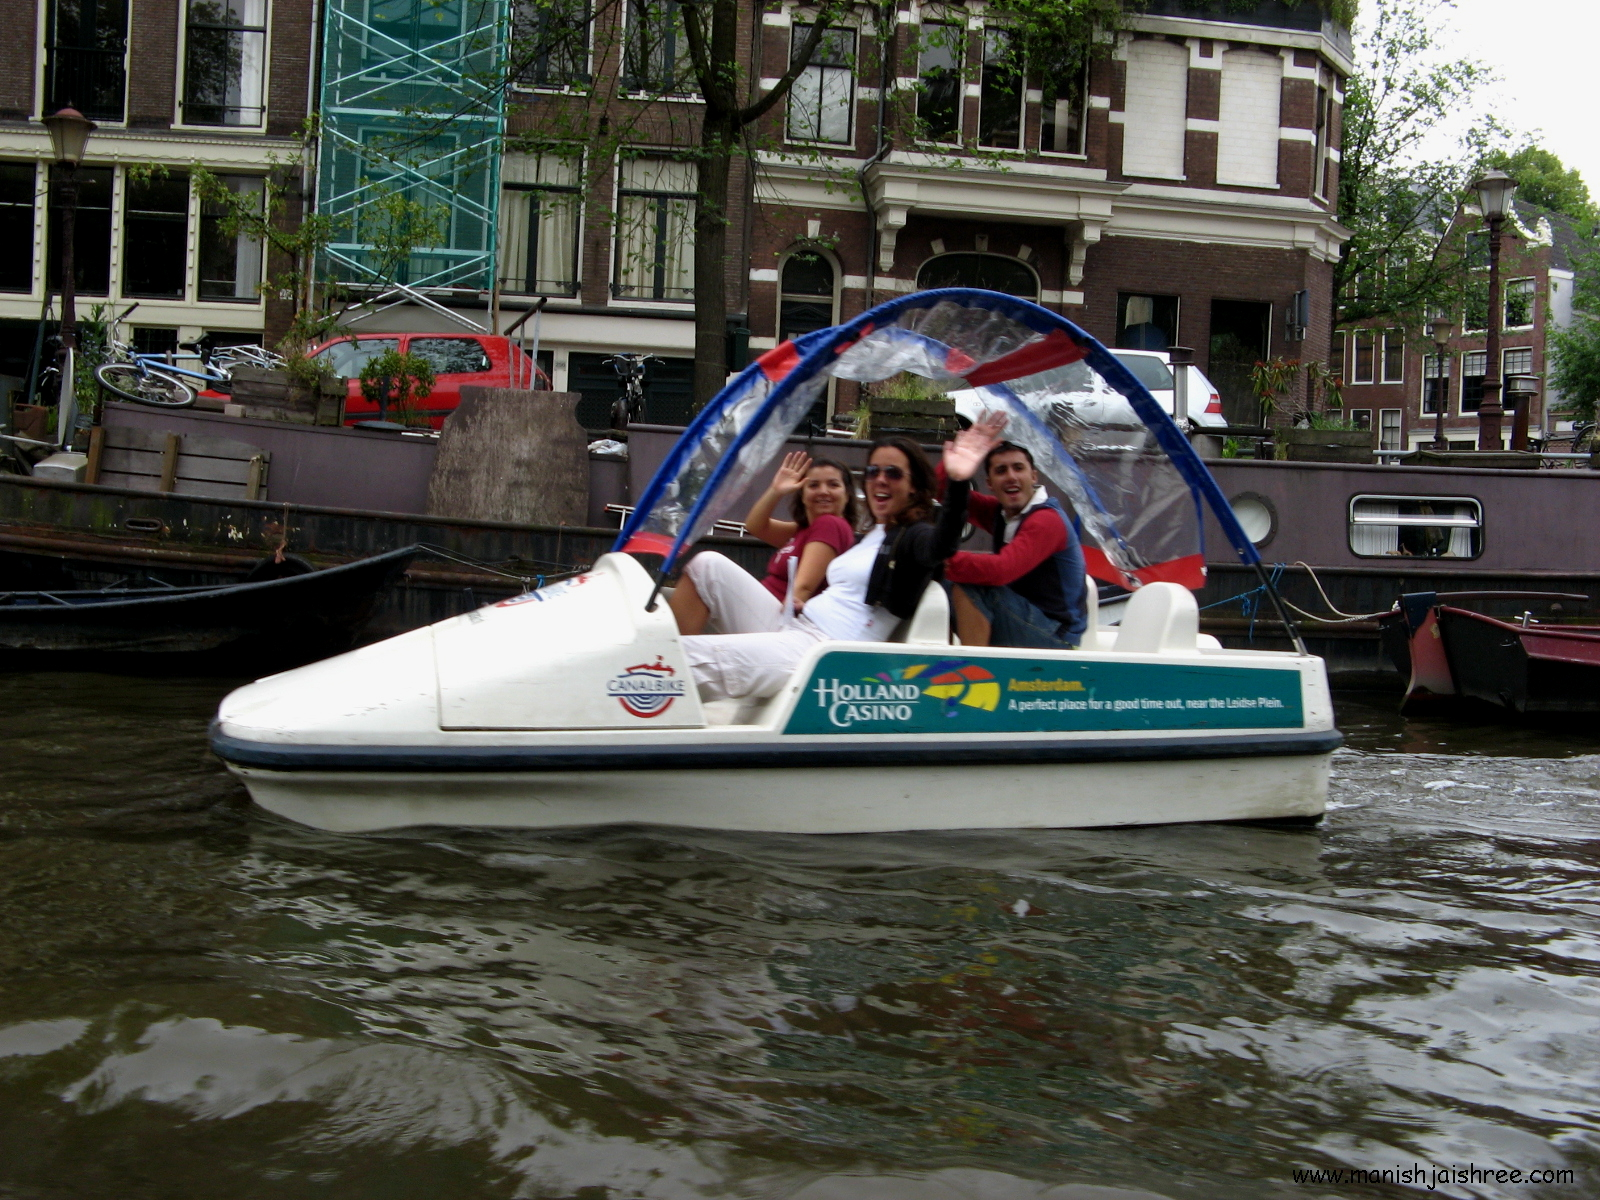 Boating in the Amstel River